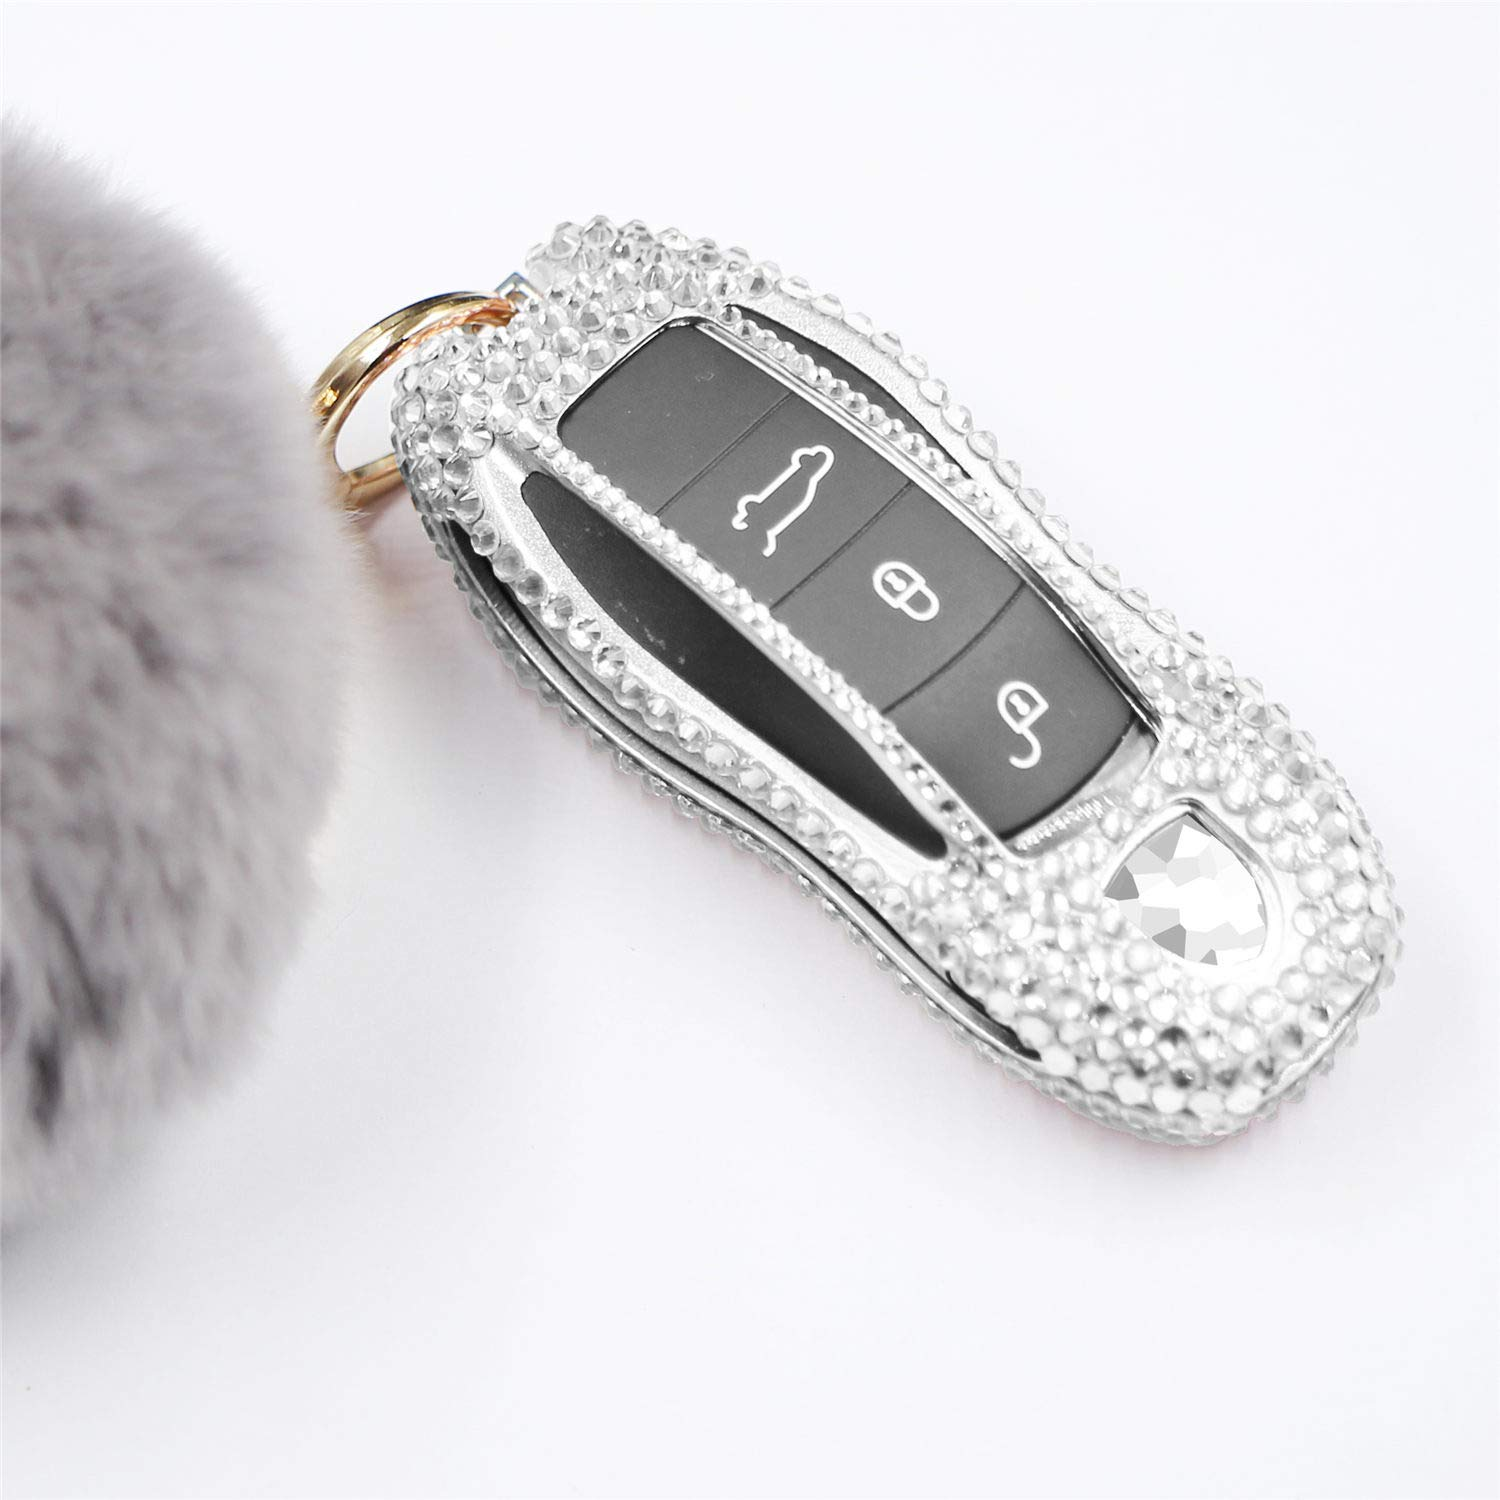 M.JVisun Handmade Car Key Fob Cover for Porsche Remote Fob, Diamond Key Case Cover Fits Porsche 718 911 918 Panamera Macan Cayenne Boxster Cayman, Bling Crystals Aluminum Key Cover Protector - Silver